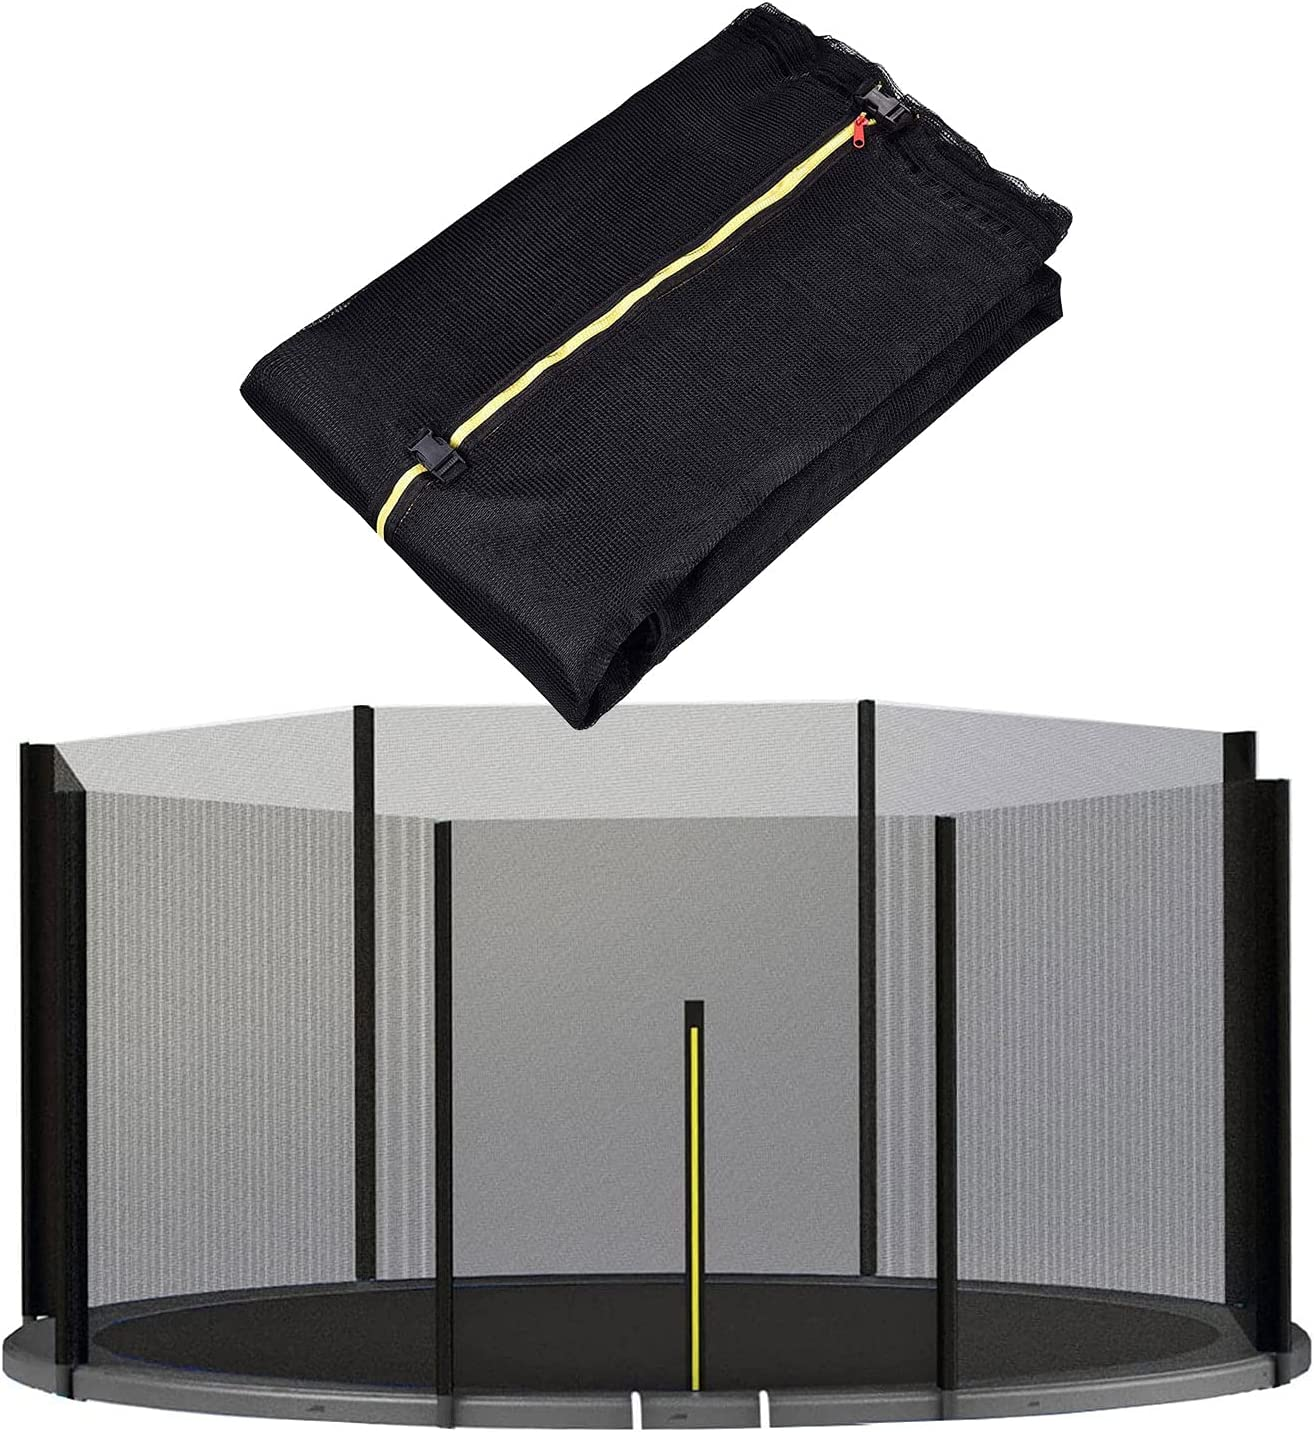 KYIS Recreational Trampoline Safety Free shipping / New Enc Enclosure Net Long-awaited